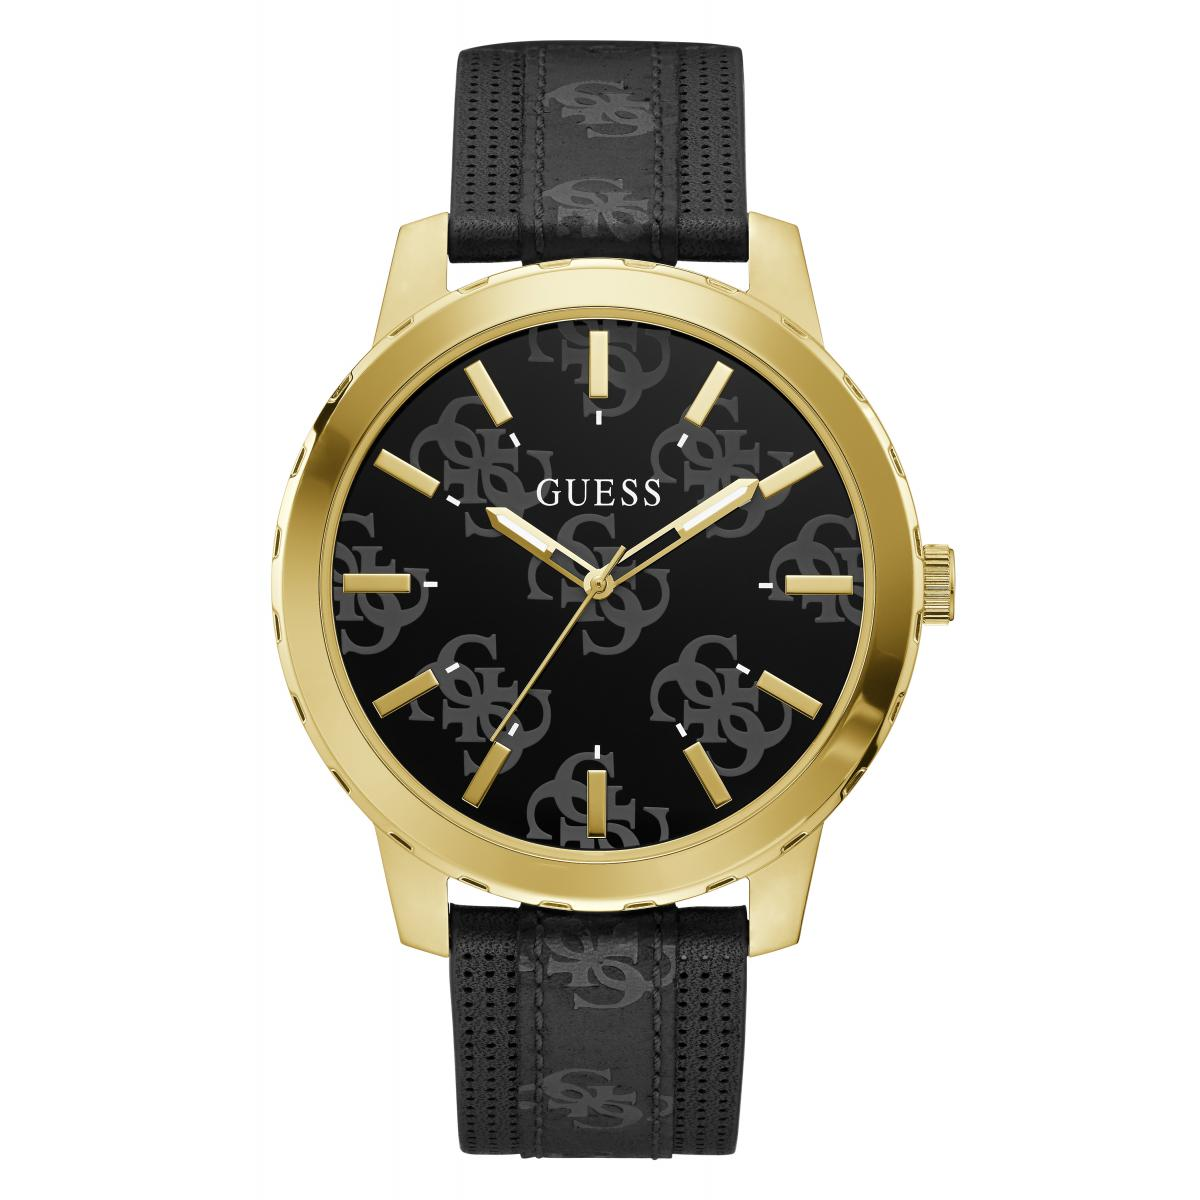 Guess Montres GW0201G1 OUTLAW  homme  Cuir Guess Montres